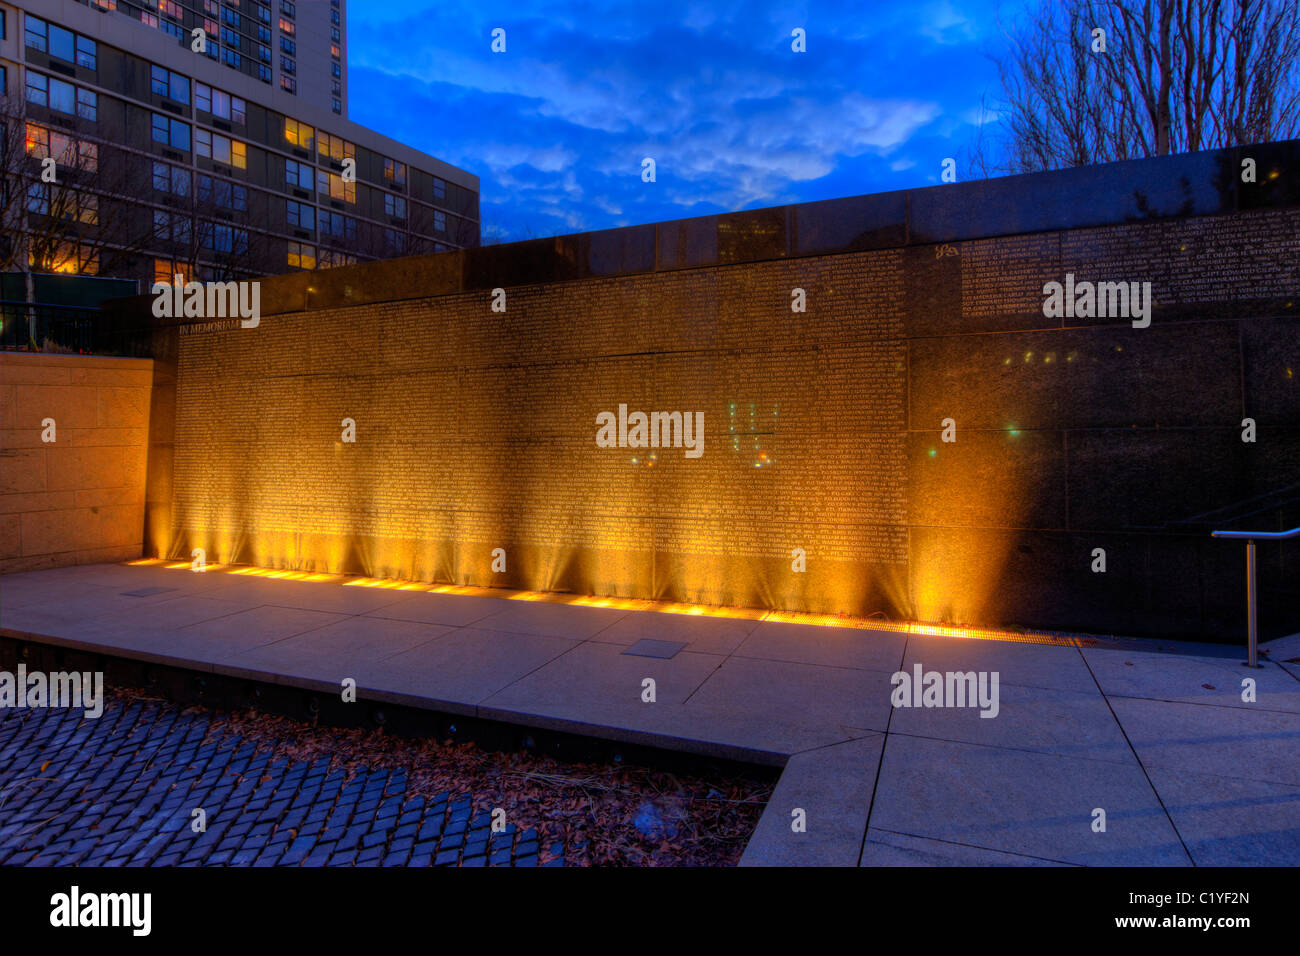 Memorial to New York City Police Officers killed in the line of duty located in Battery Park City in Manhattan at - Stock Image